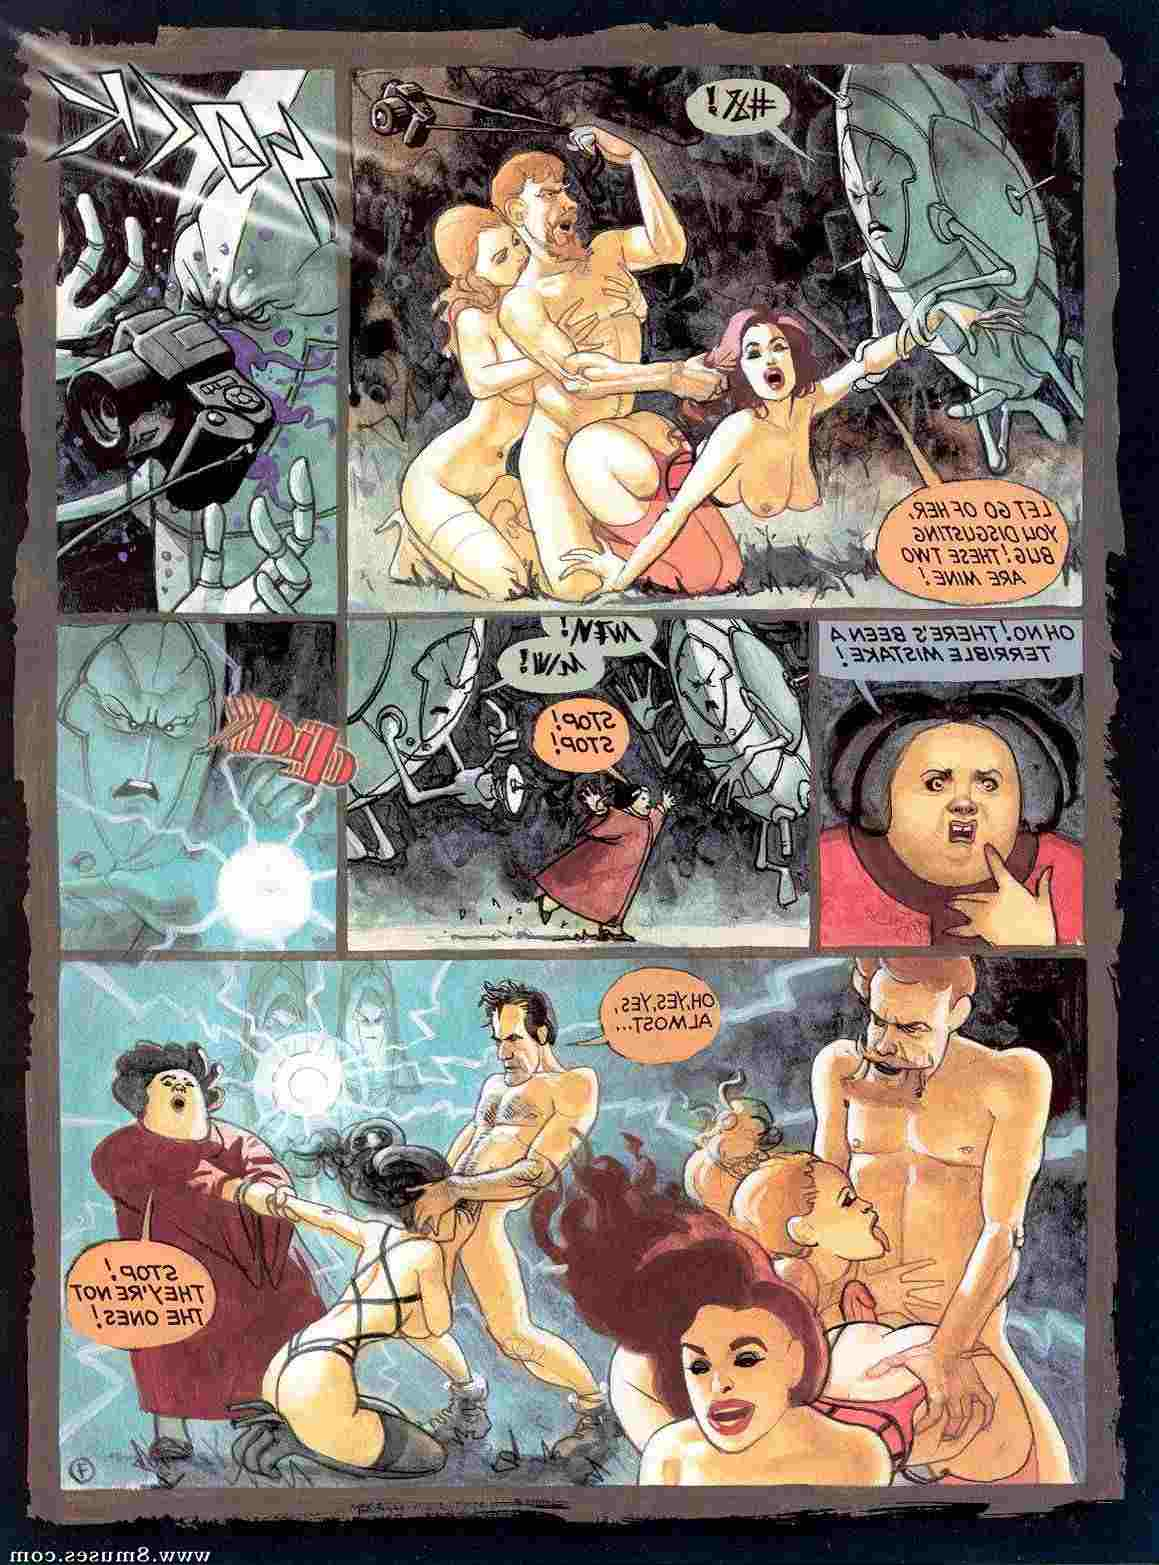 Ignacio-Noe-Comics/Out-of-This-World Out_of_This_World__8muses_-_Sex_and_Porn_Comics_7.jpg